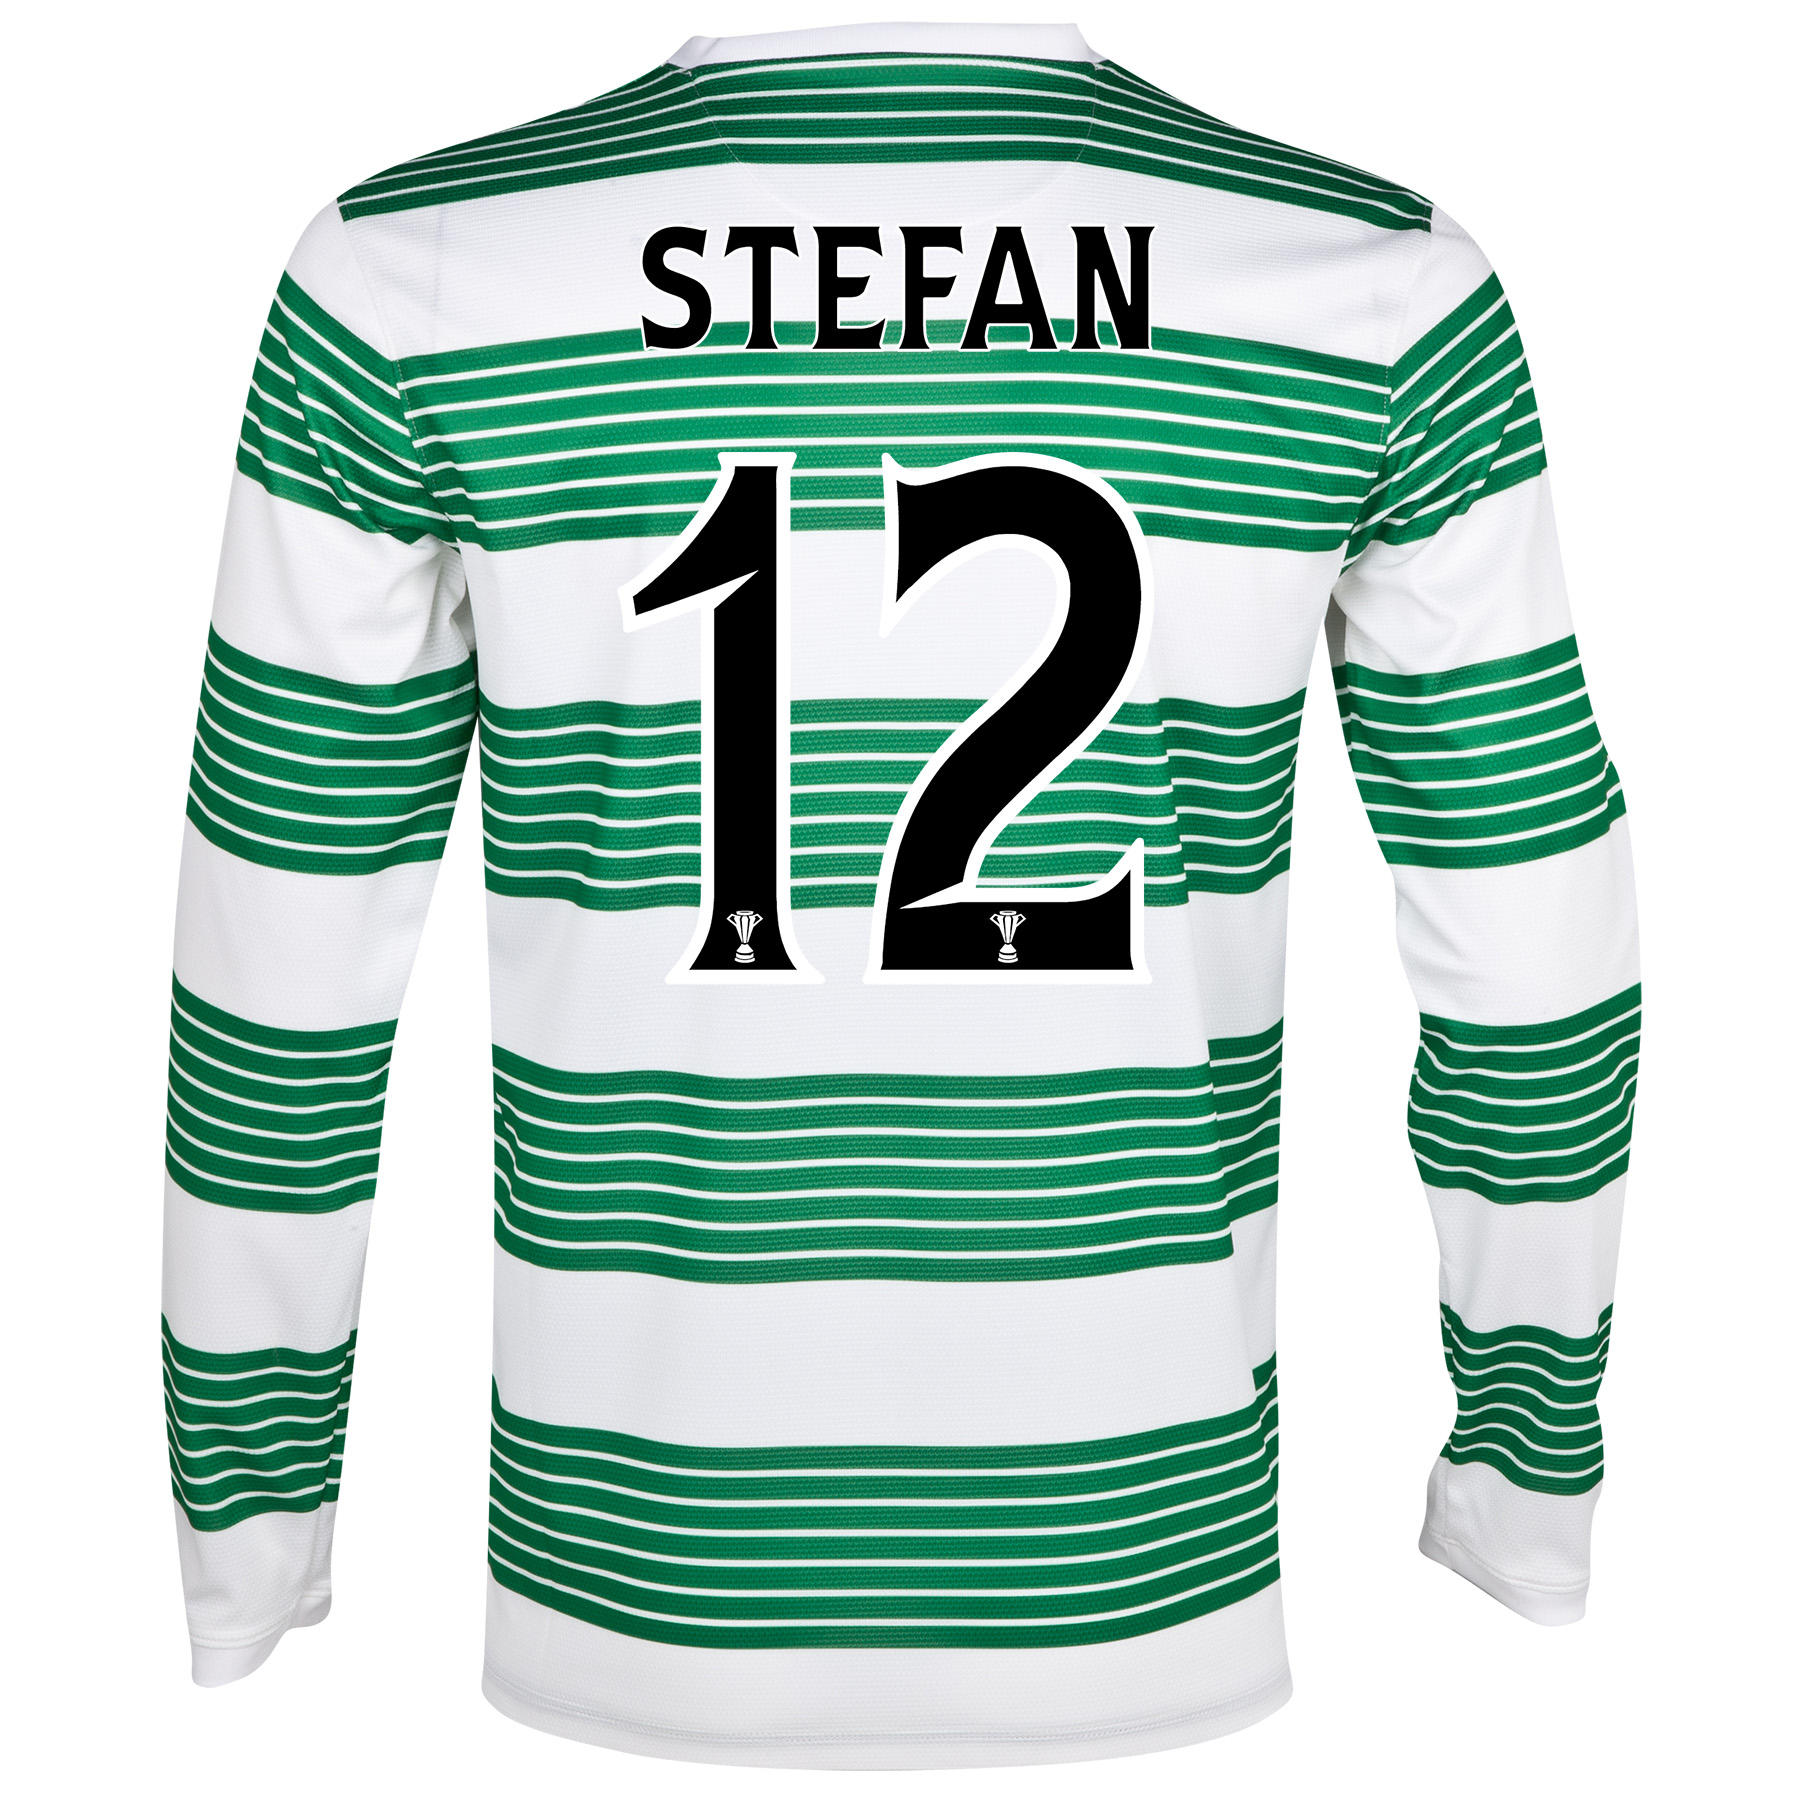 Celtic Home Shirt 2013/15 - L/S- Unsponsored with Stefan 12 printing